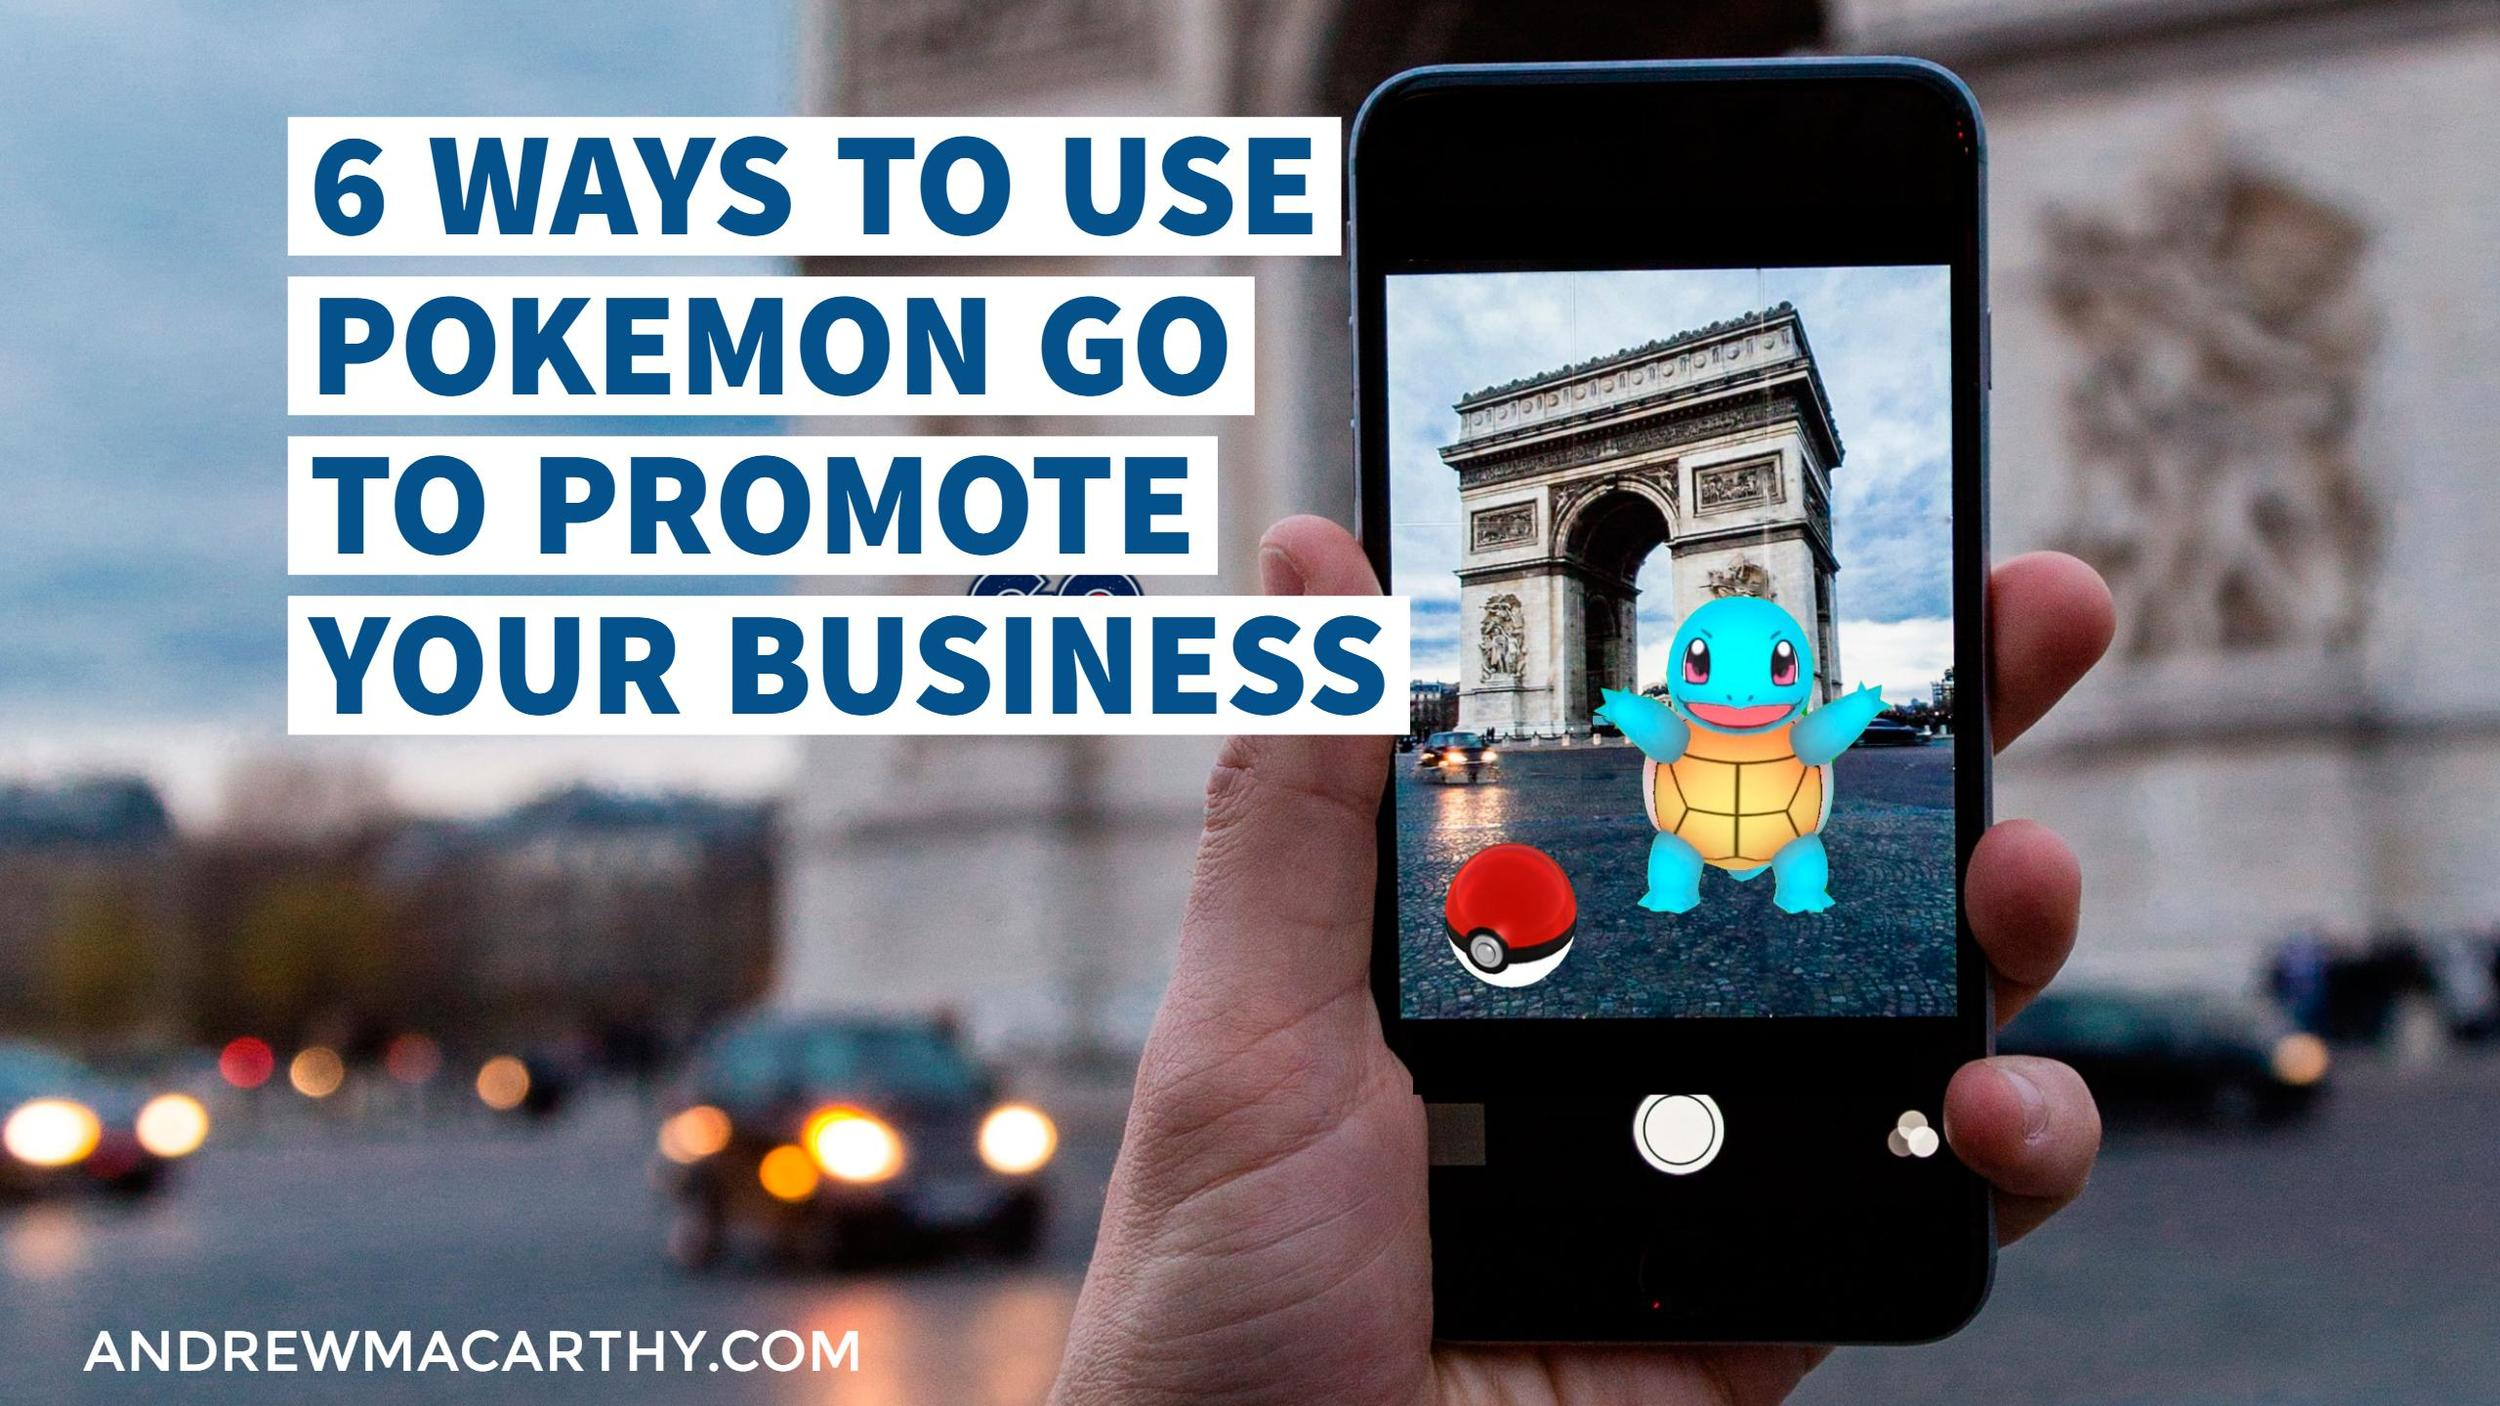 6 Ways to Use Pokemon Go to Promote Your Business And Drive Sales (With the Help of Social Media)